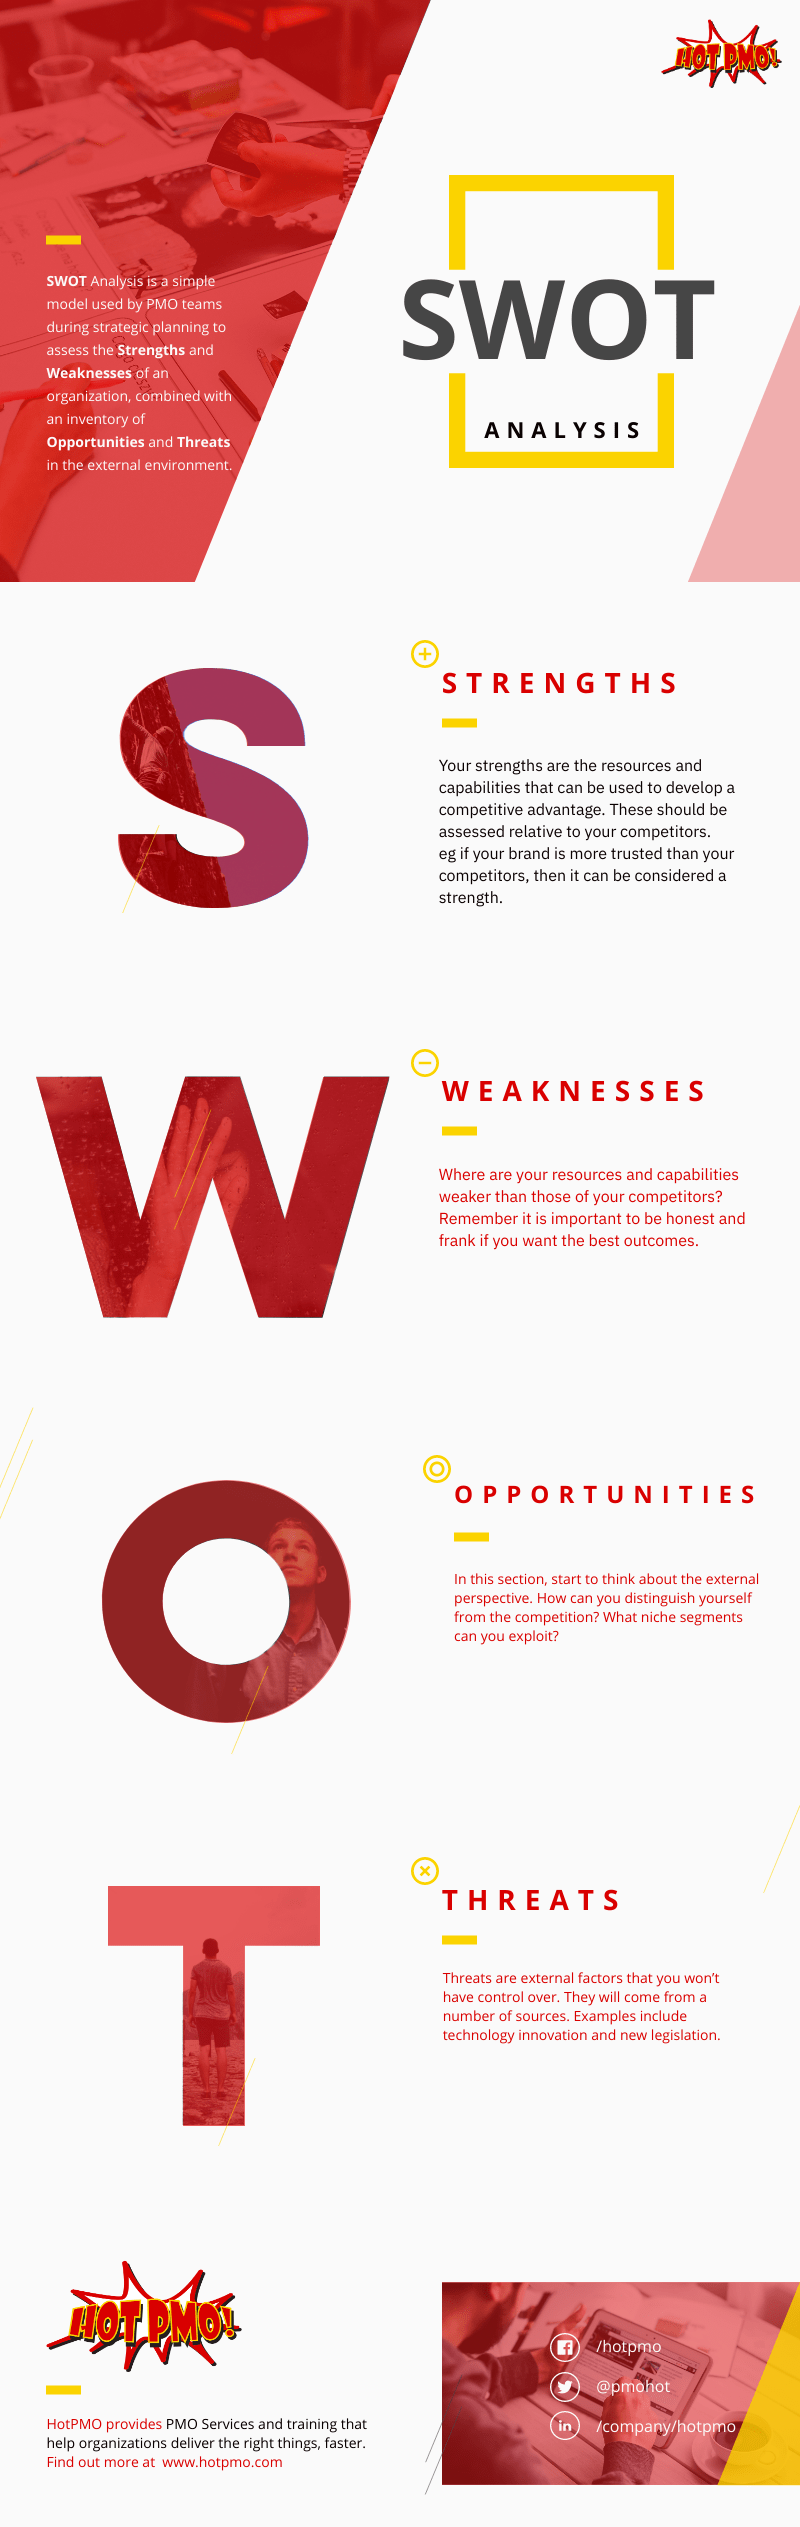 SWOT Analysis Infographic - SWOT Analysis (Strengths, Weaknesses Opportunities, Threats)